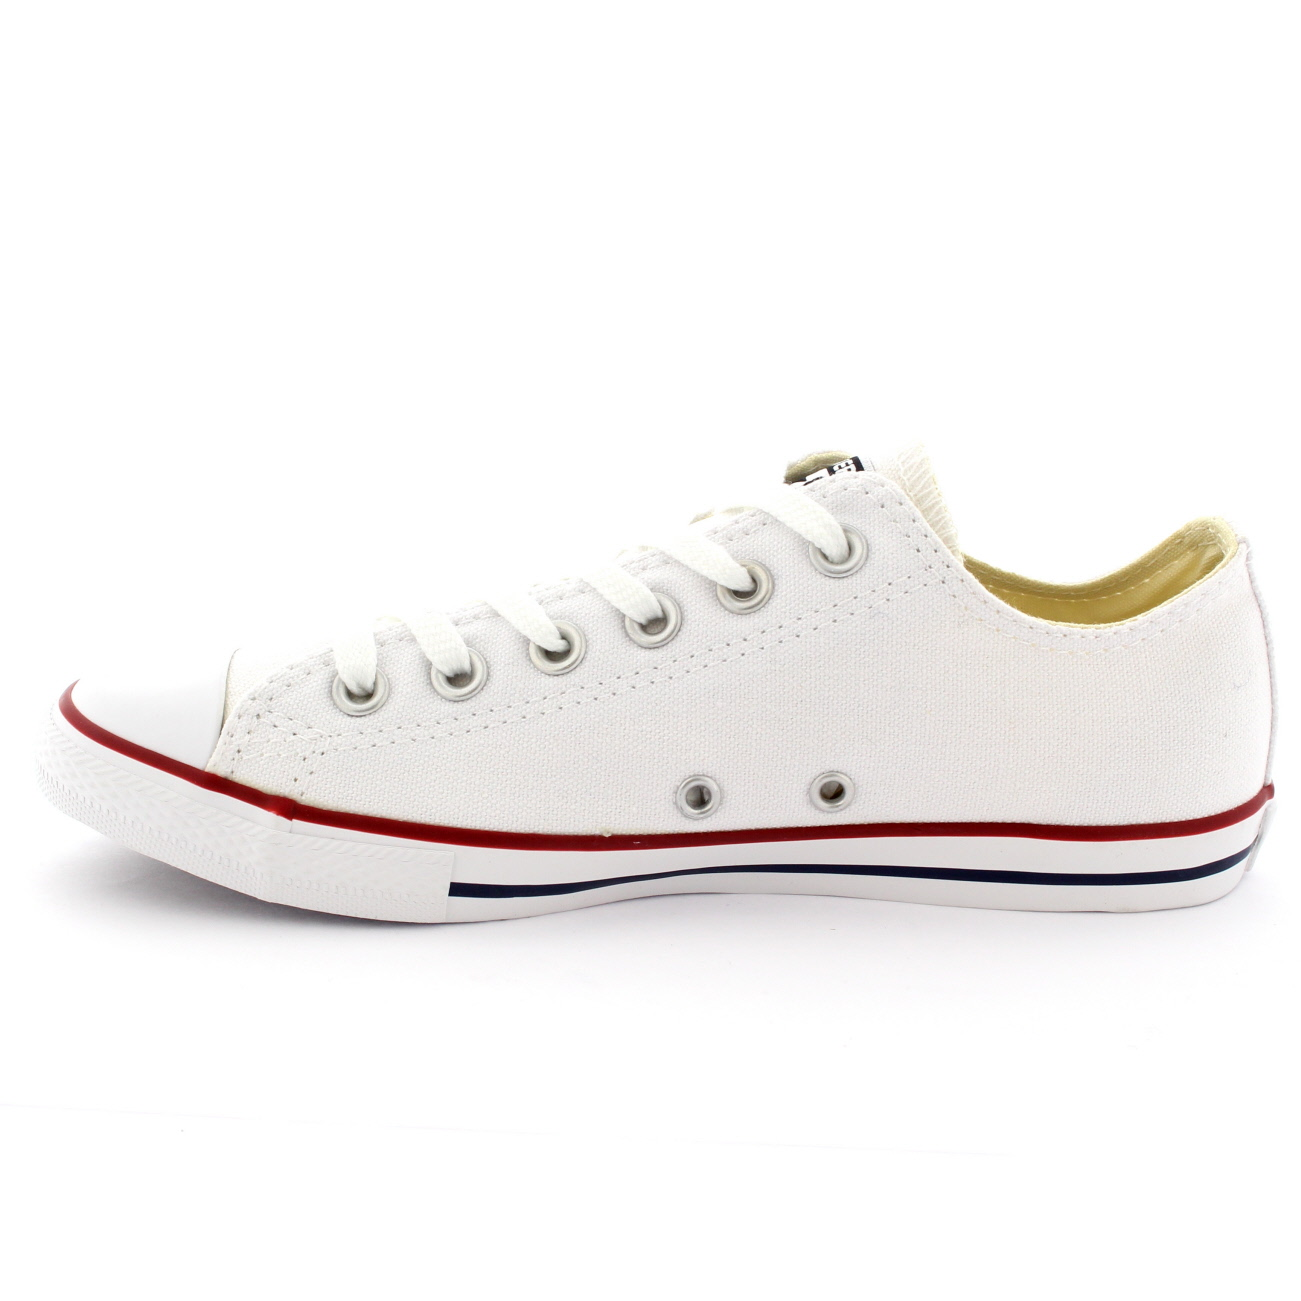 40dcc241c7d4 Mens Converse Lean Ox Chuck Taylor All Star Chucks Low Top Laced ...